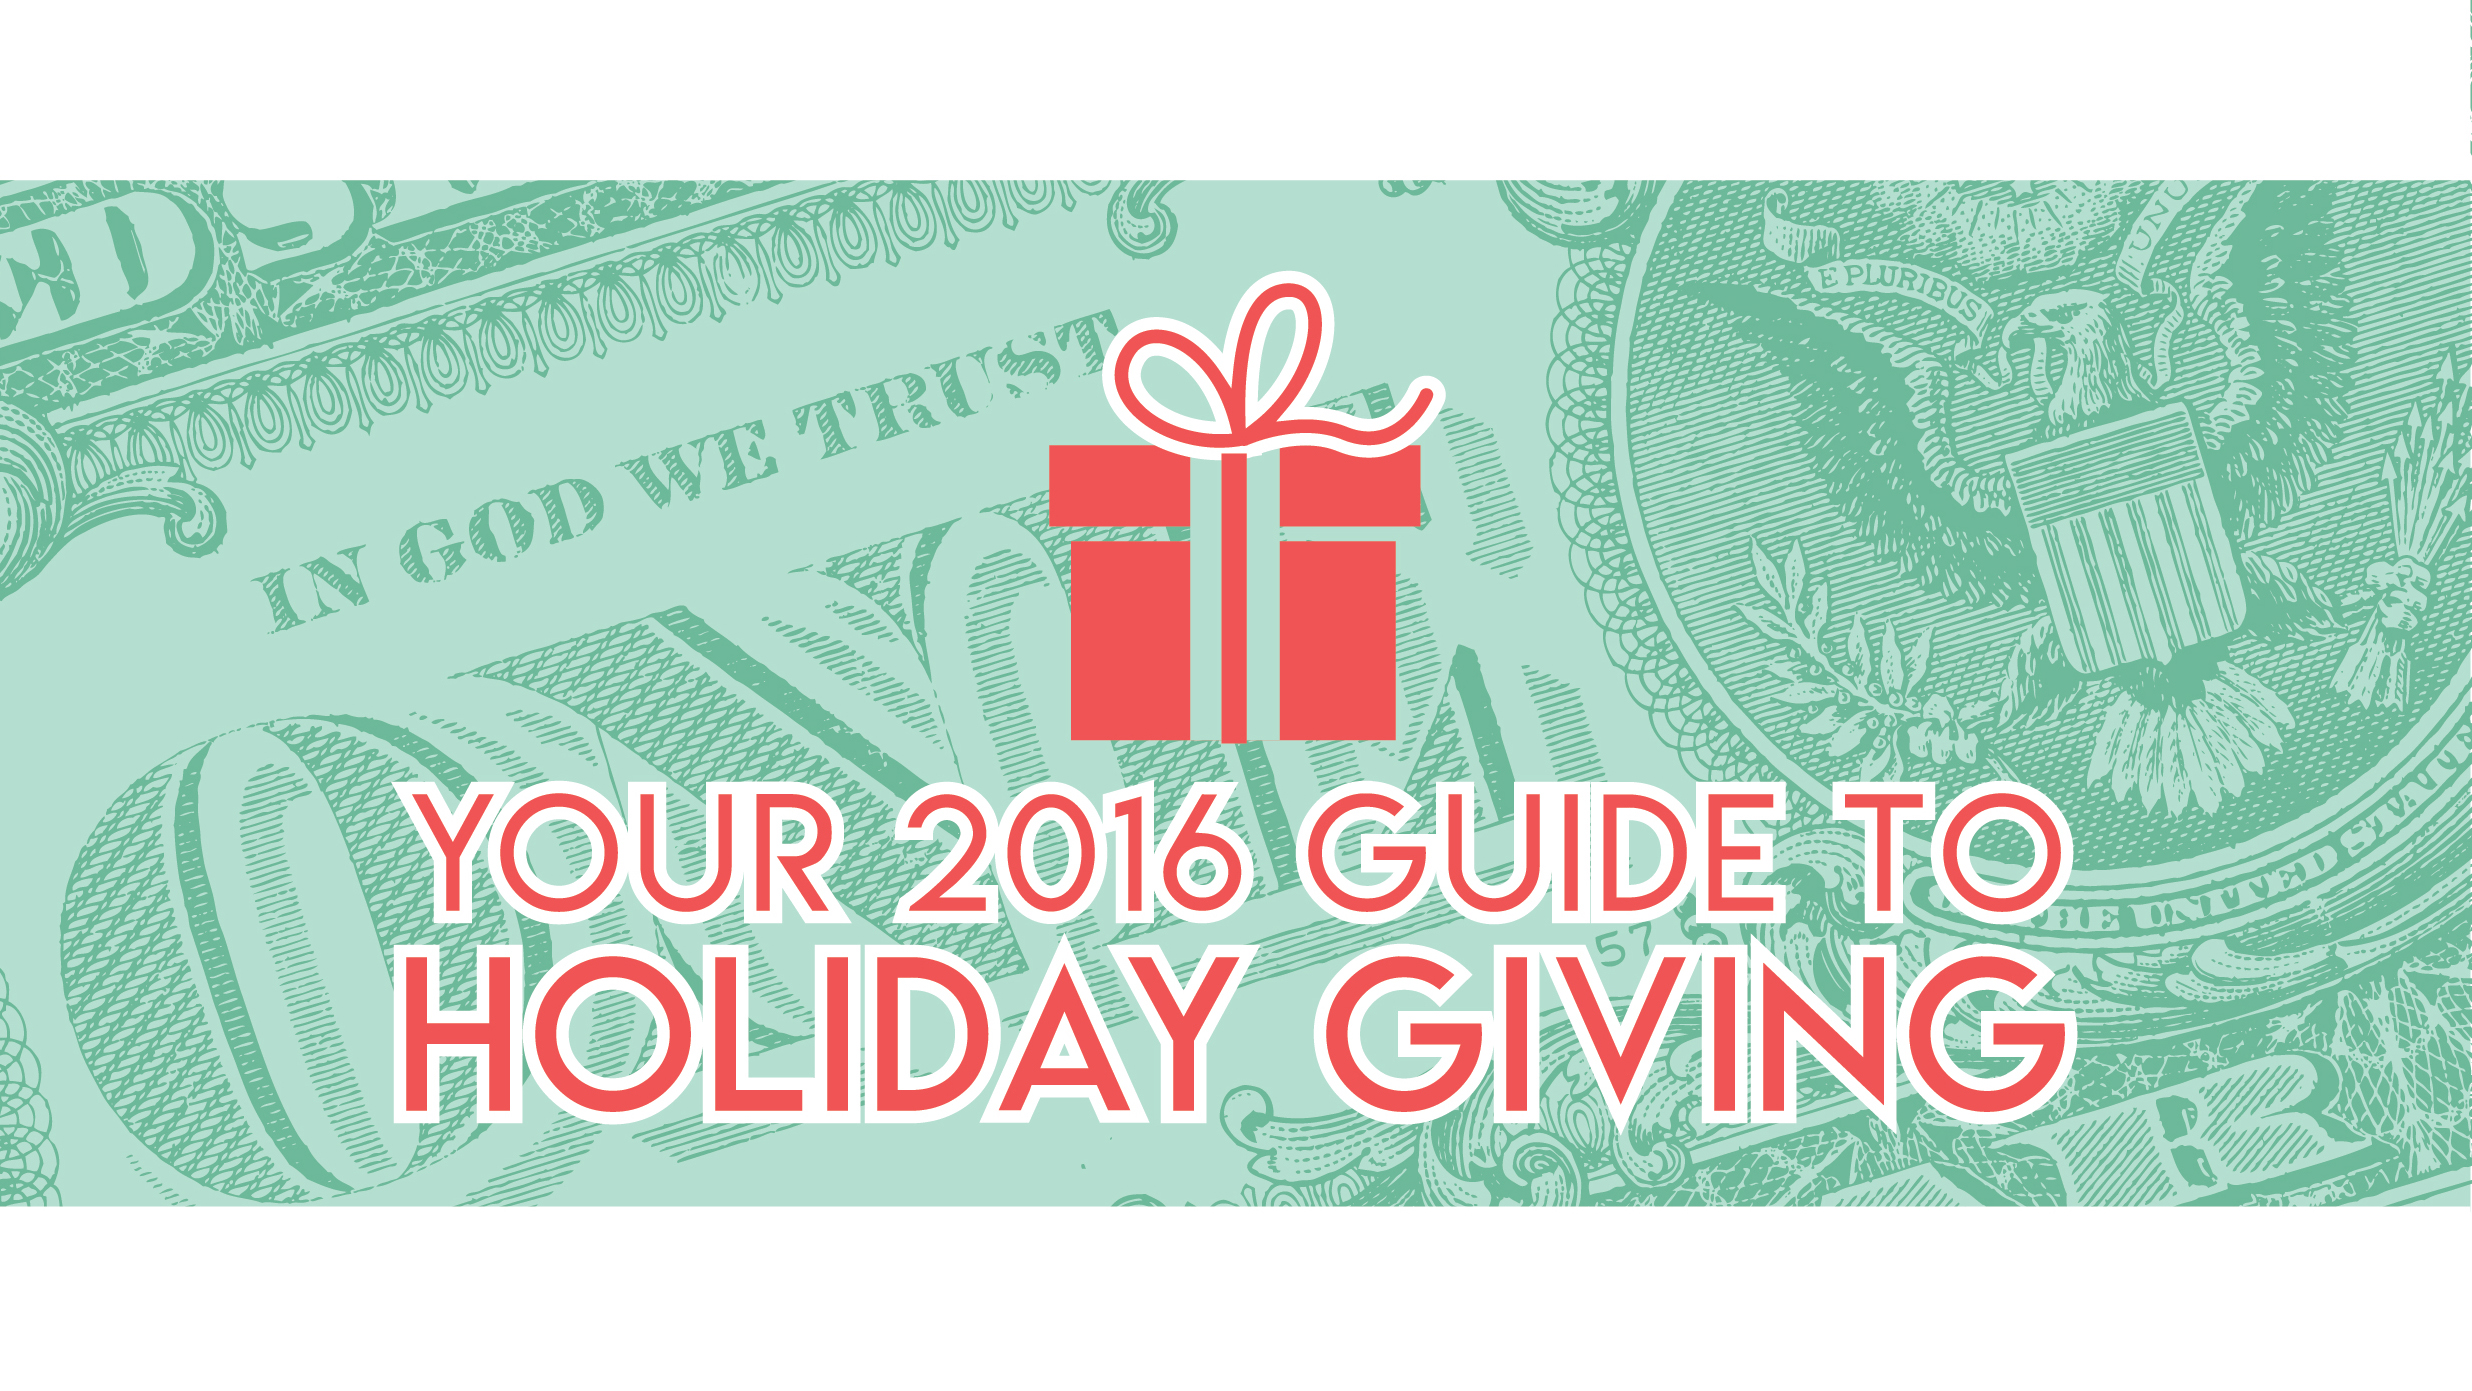 Holiday Guide 2016 copy.jpg